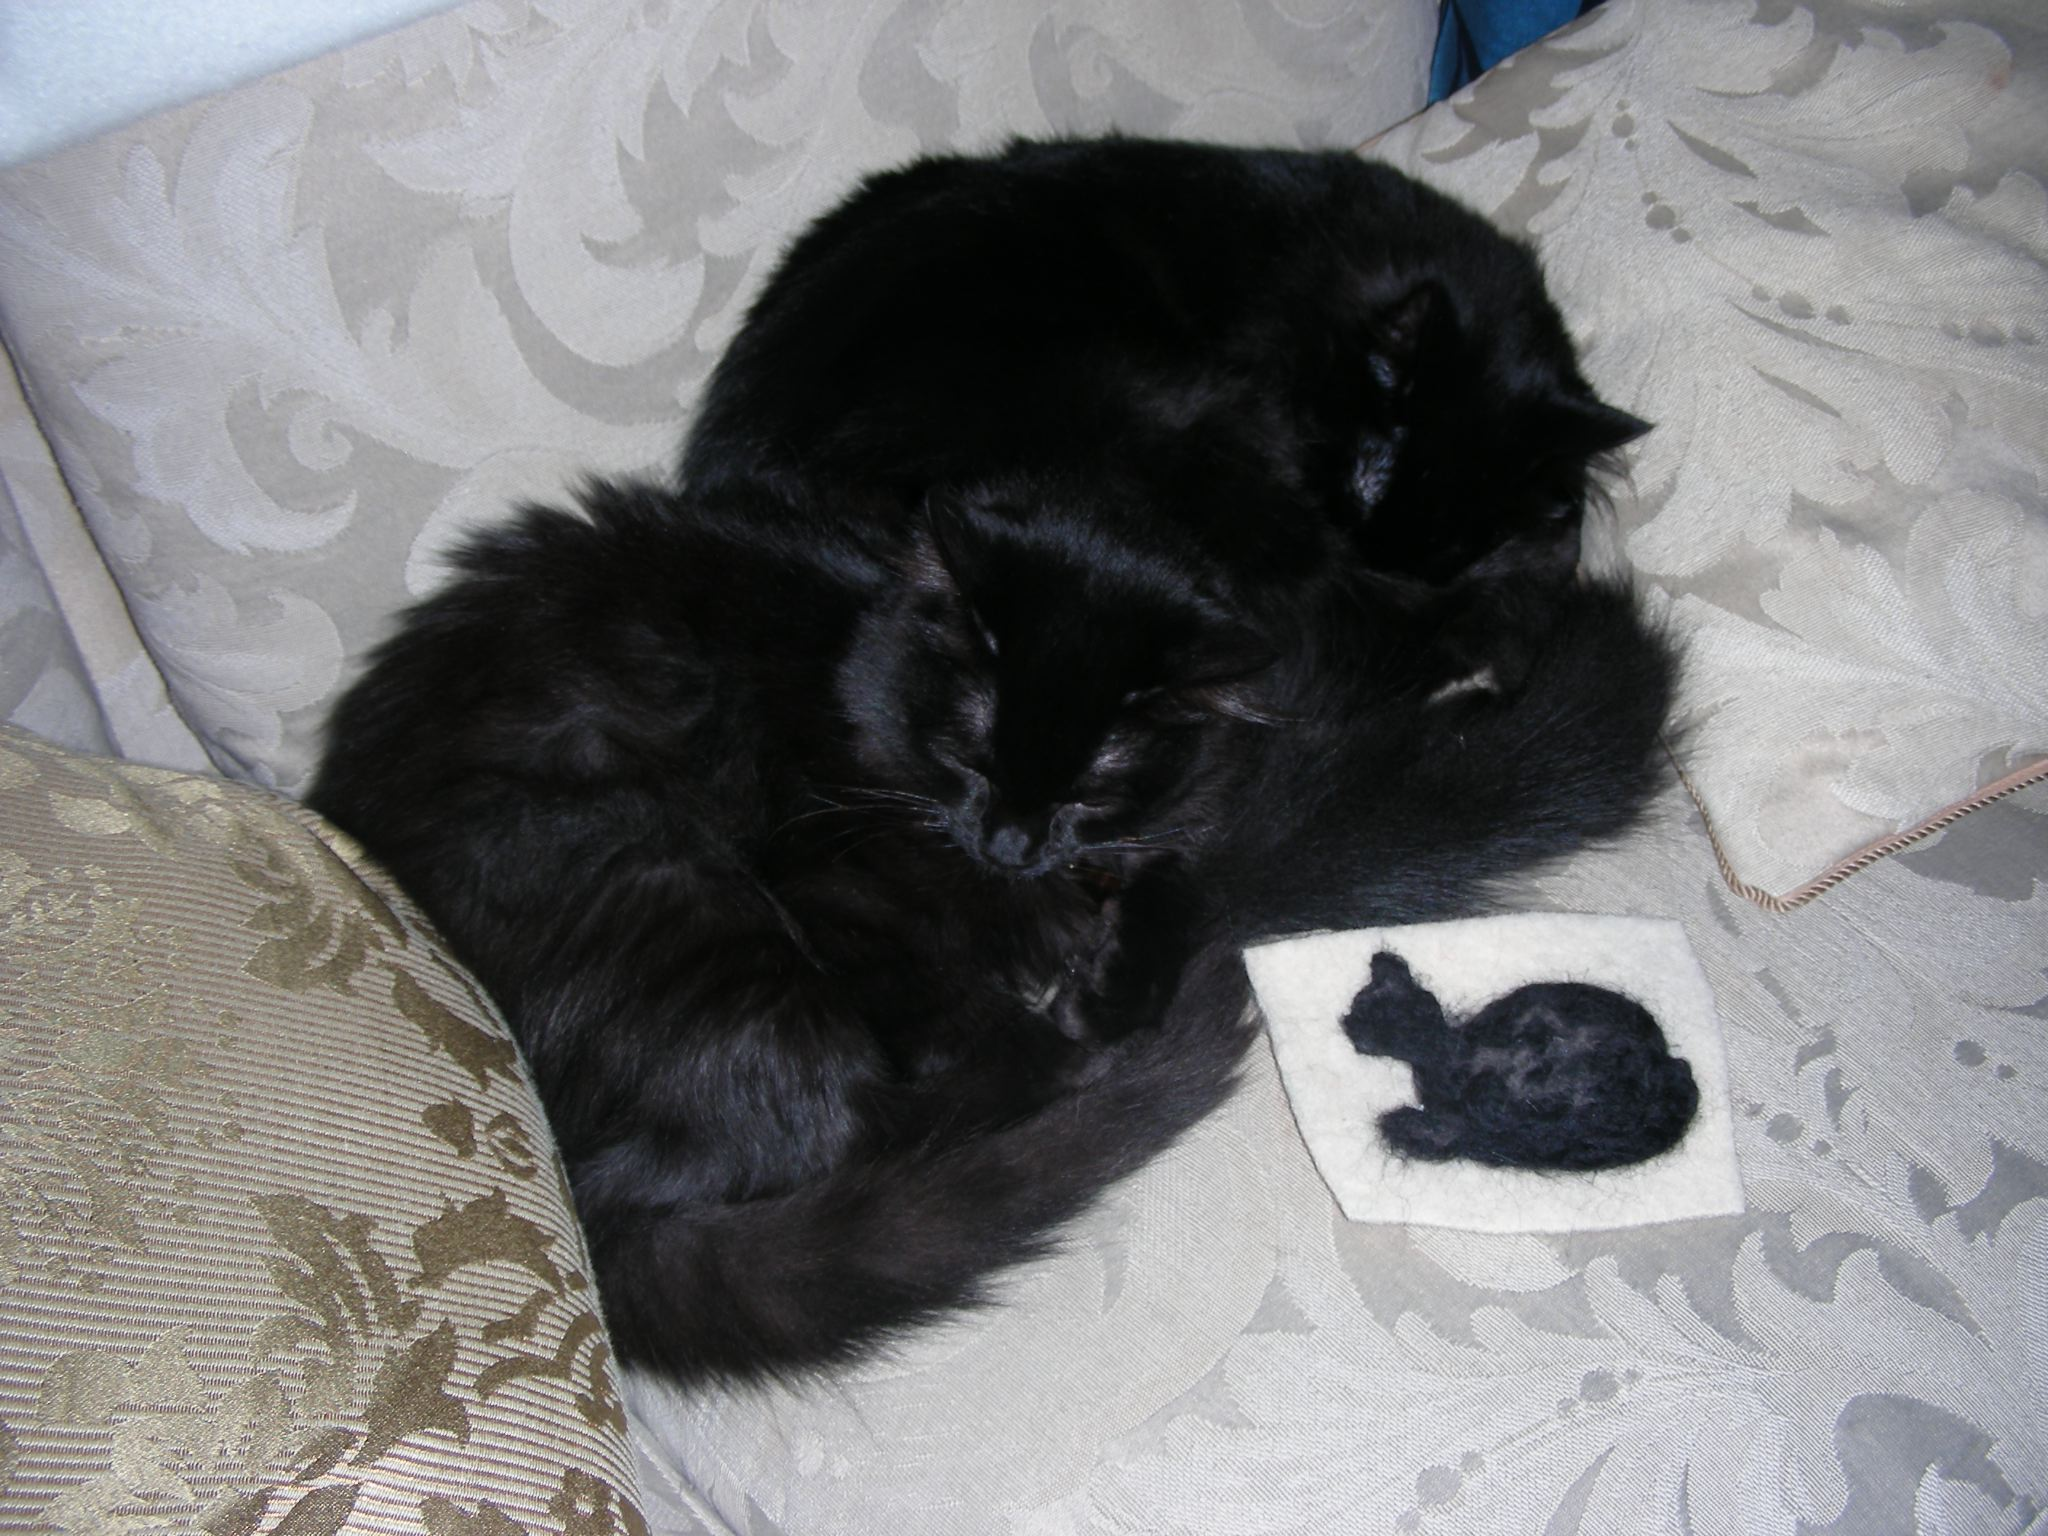 Mom brushed the kitties and used their fur to needle felt onto a freeform black cat. She took a class at Stitches West.